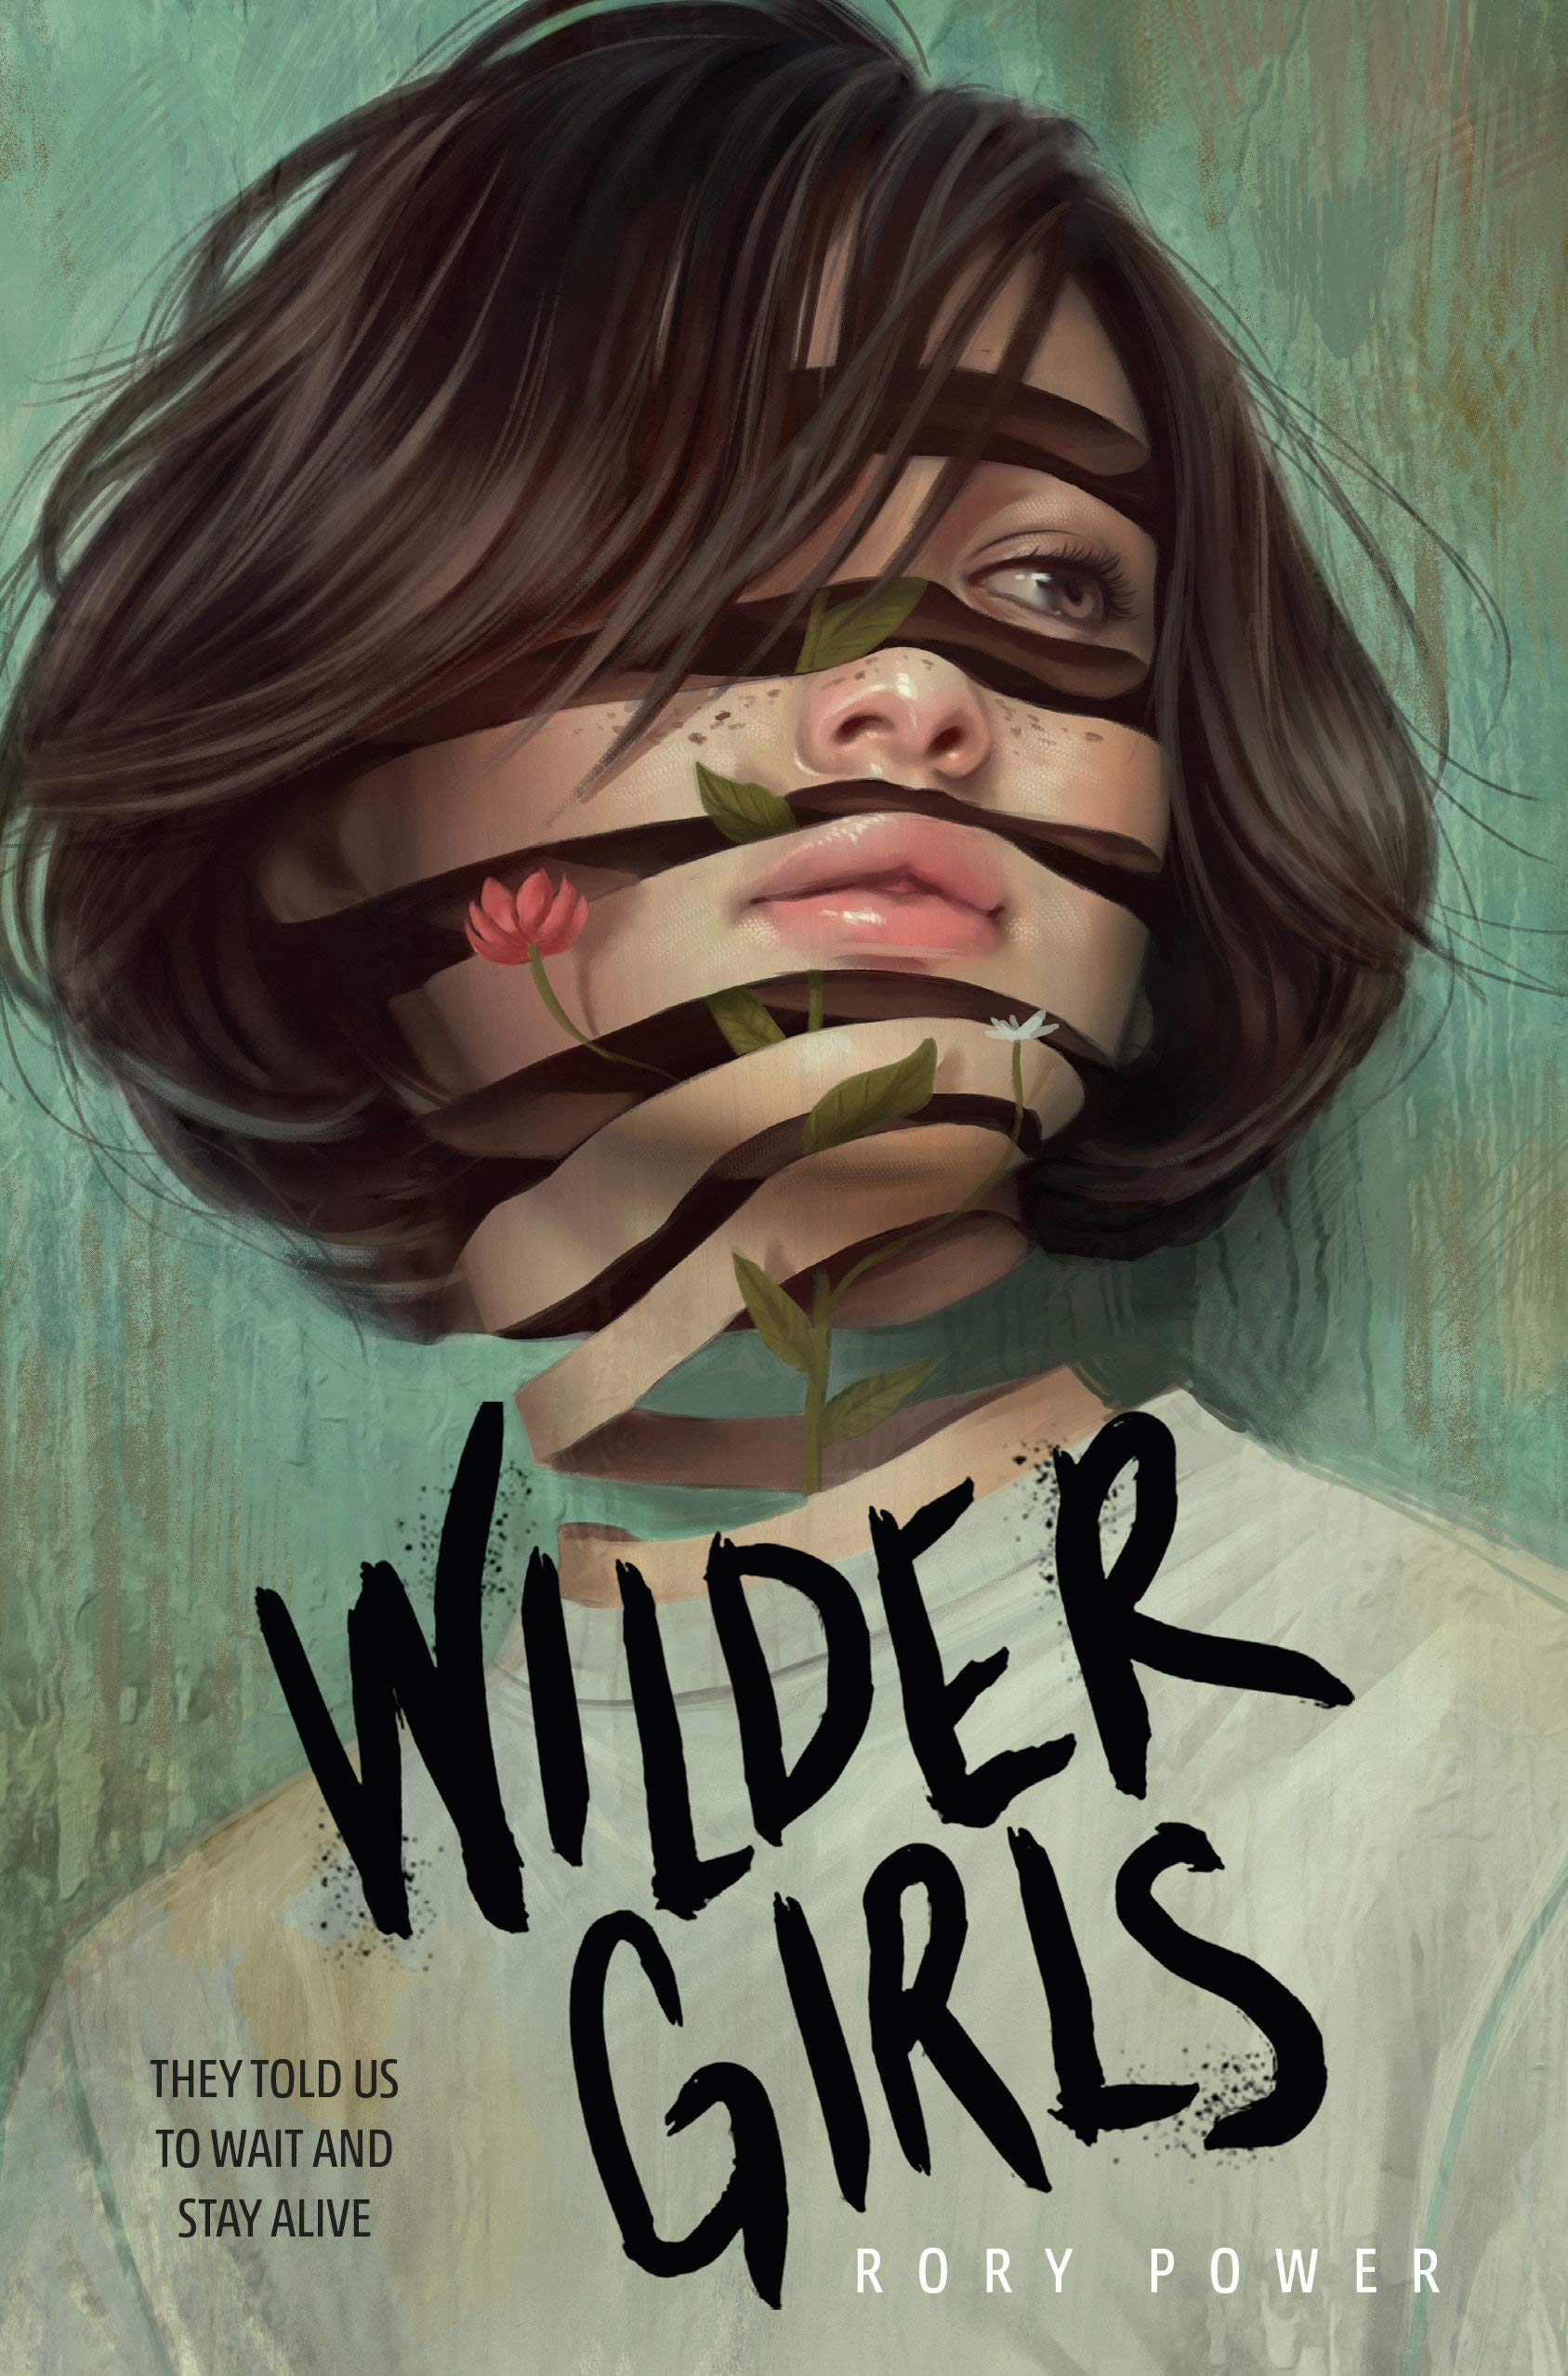 rory power, wilder girls